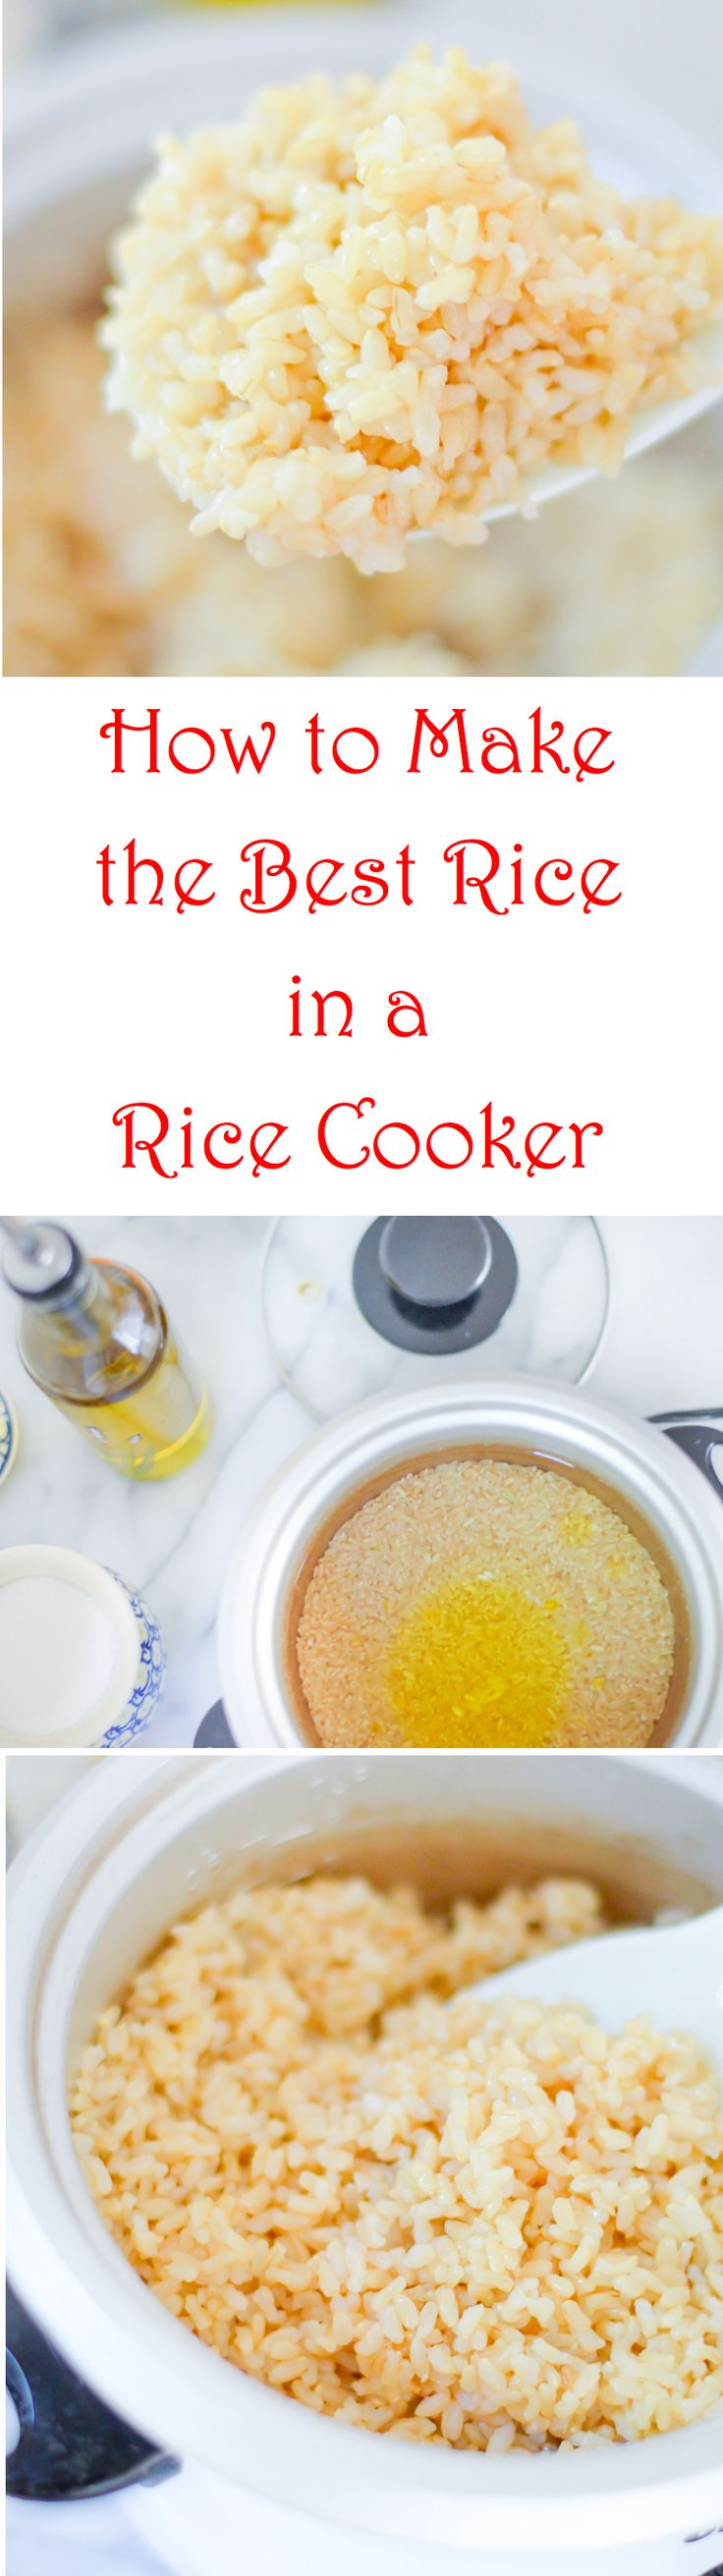 Best Rice In Rice Cooker